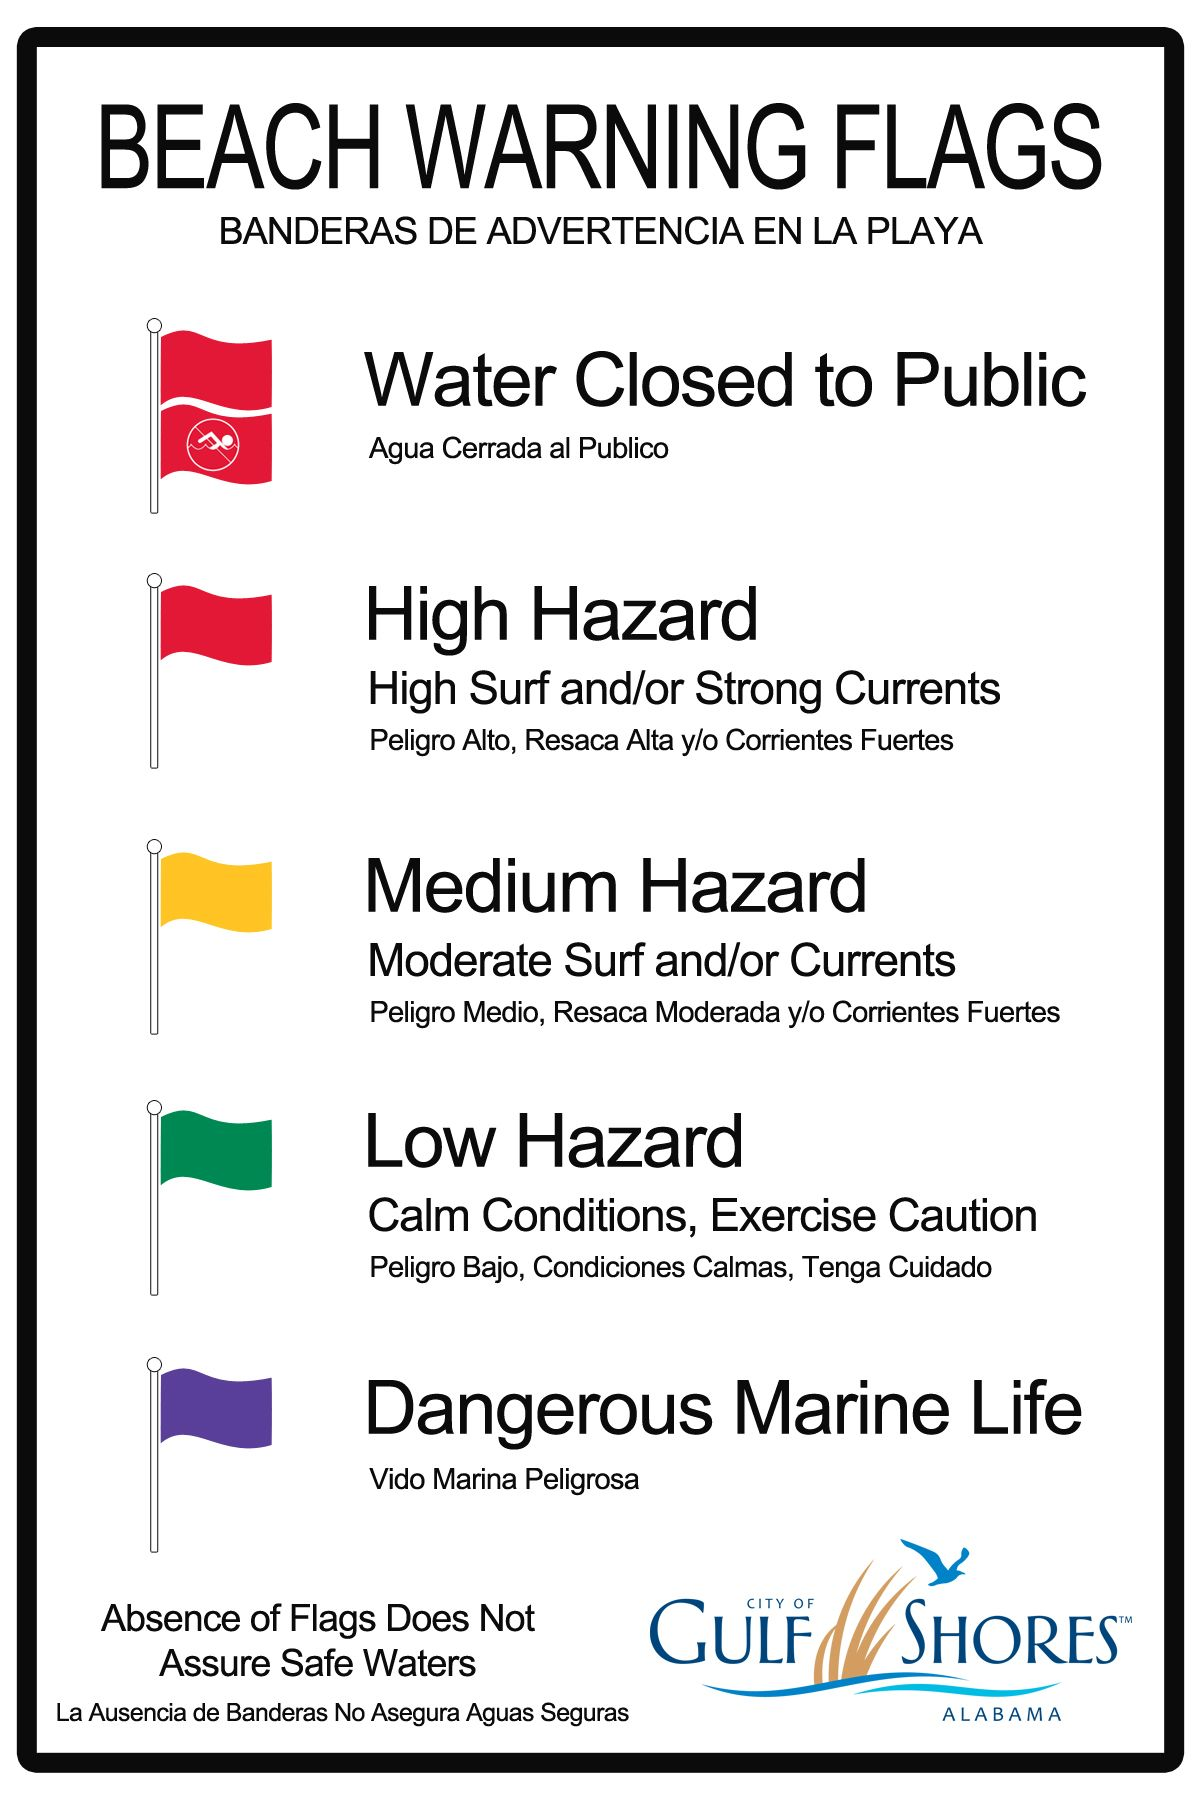 Beach Warning Flag Grahpic This is very important